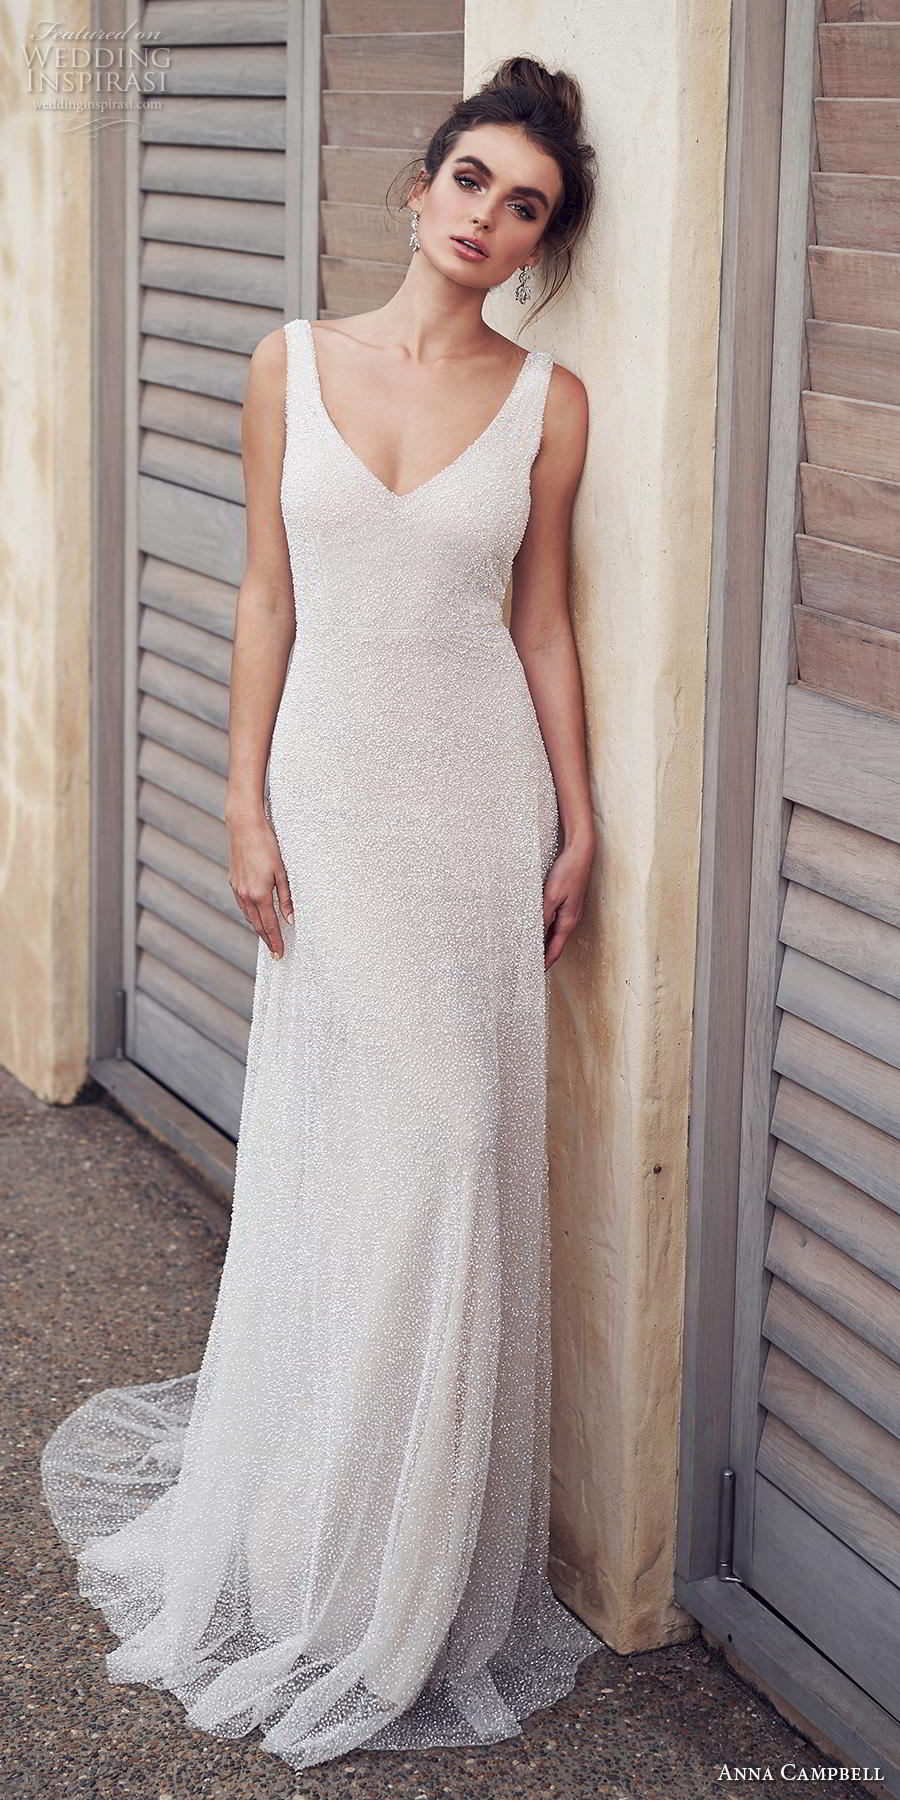 anna campbell 2019 bridal sleeveless v neck full embellishment gltizy simple elegant modified a line wedding dress backless v back sweep train (10) mv